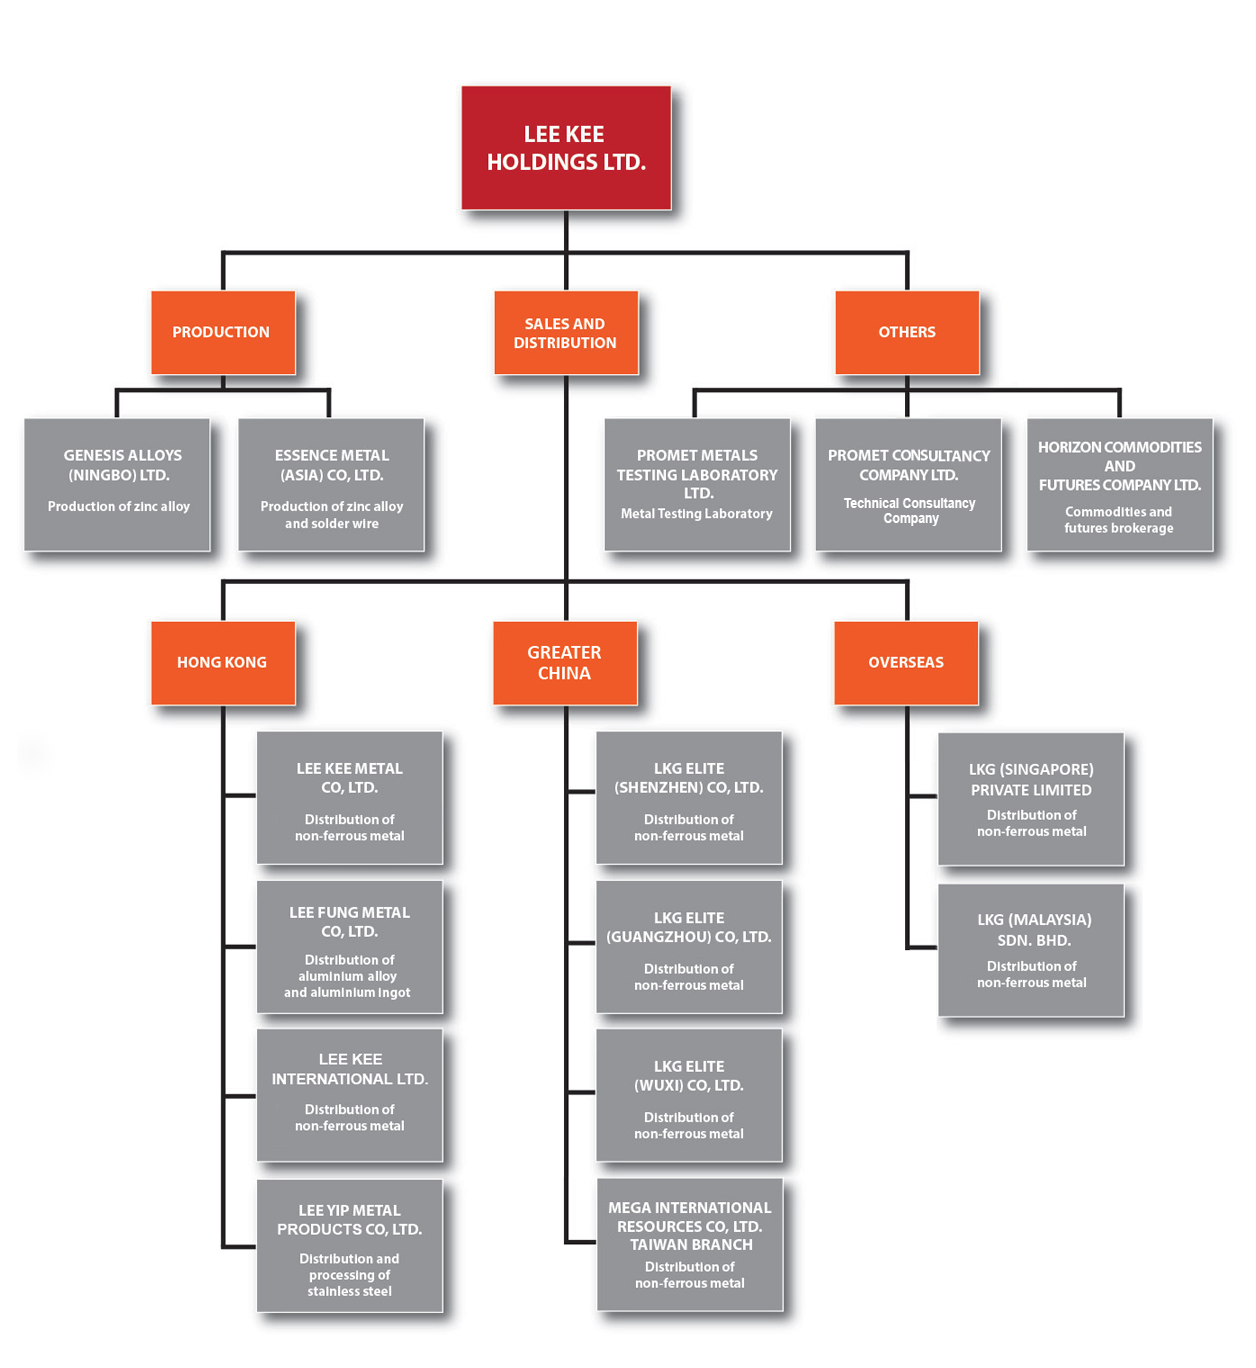 organisation structure eng_190502